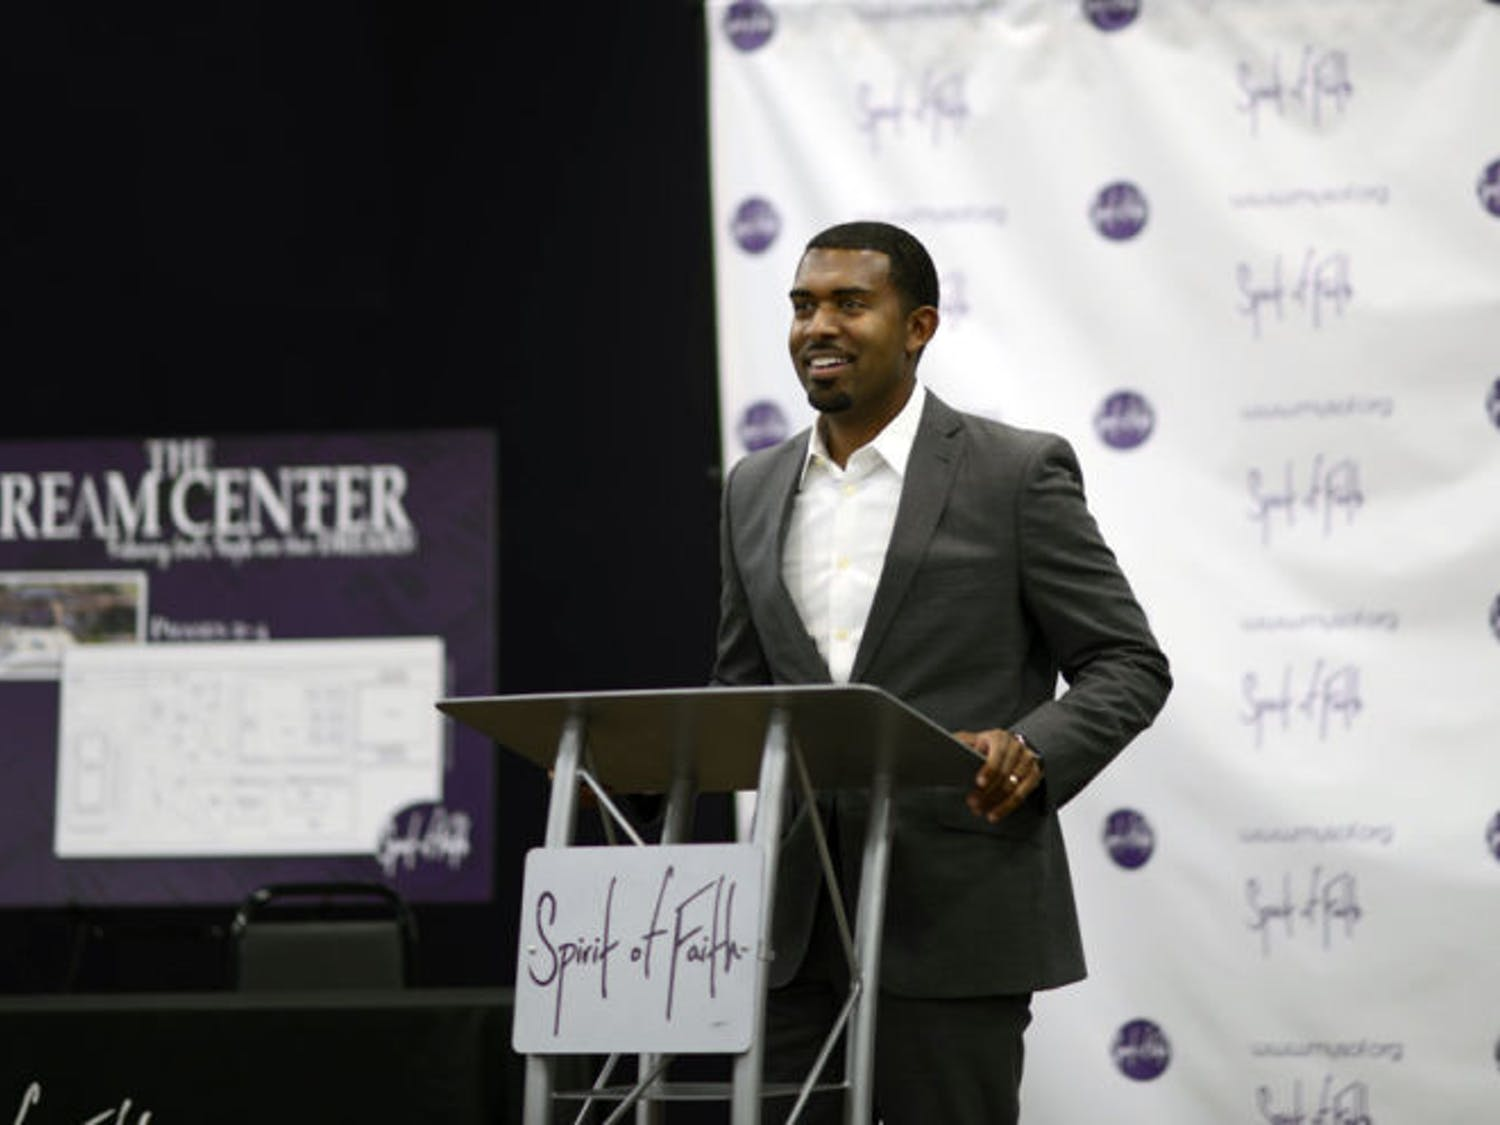 Spirit of Faith Pastor Kenneth Claytor speaks at the Spirit of Faith Dream Center on Thursday. The church raised $300,000 to buy the site formerly owned by the Rev. Terry Jones.